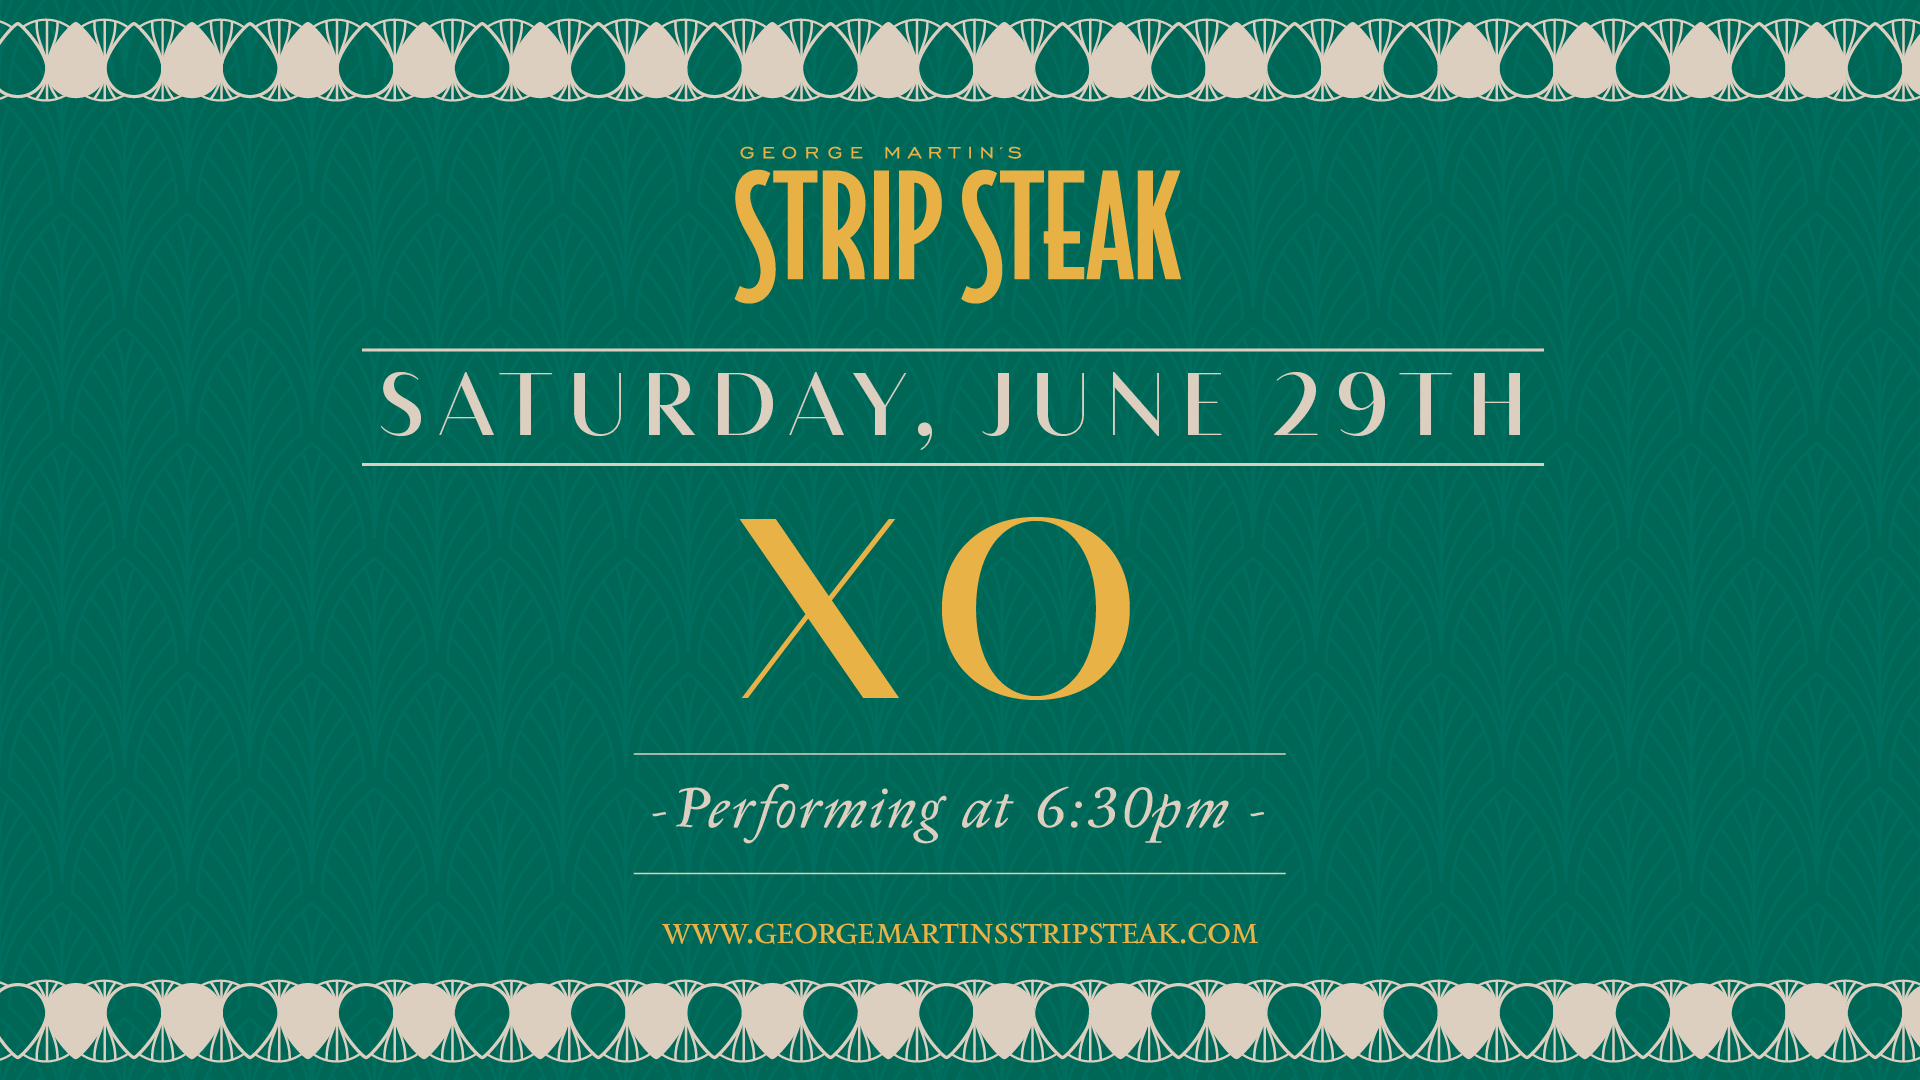 Flyer for live music with XO on June 29th at 6:30pm.